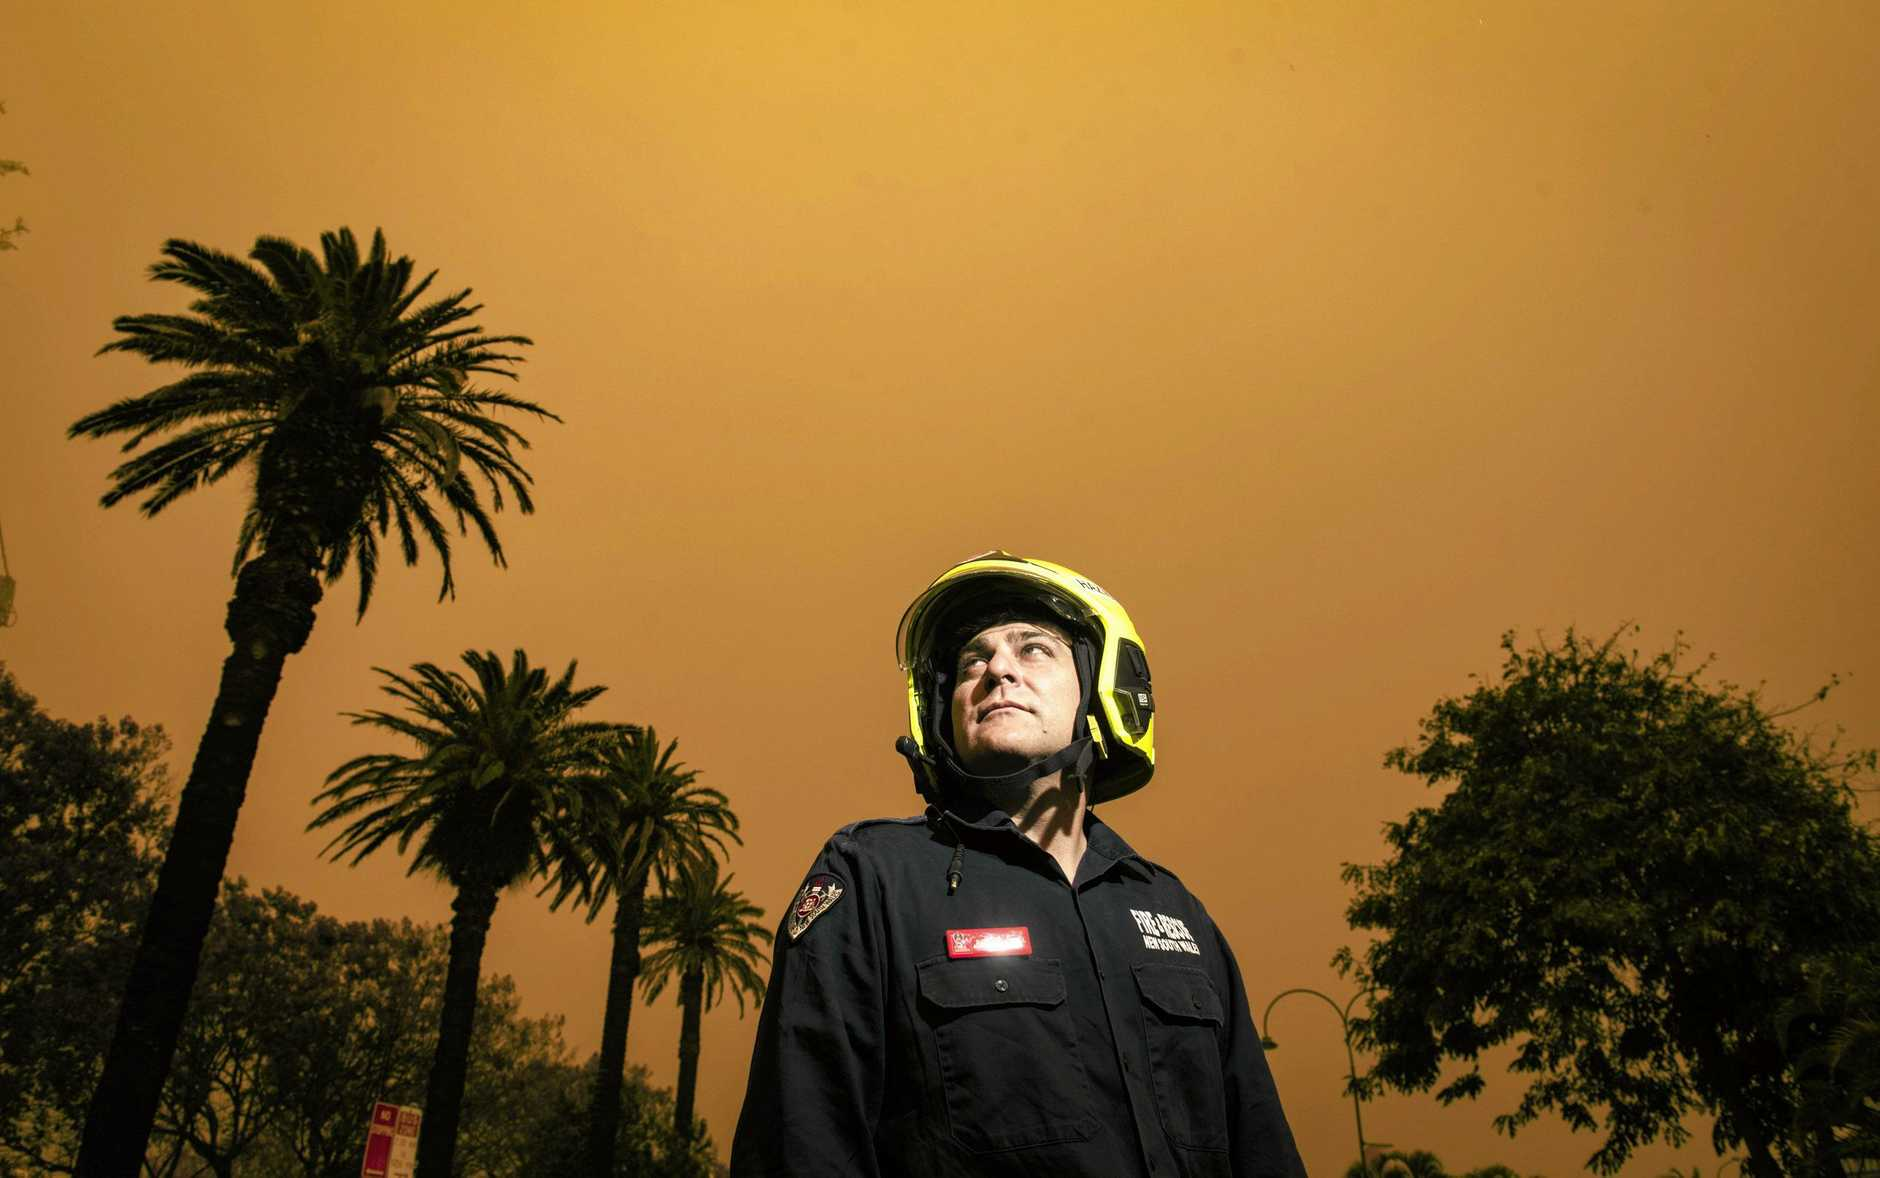 Scott Purnell, who returned from strike team work fighting fires in Port Macquarie